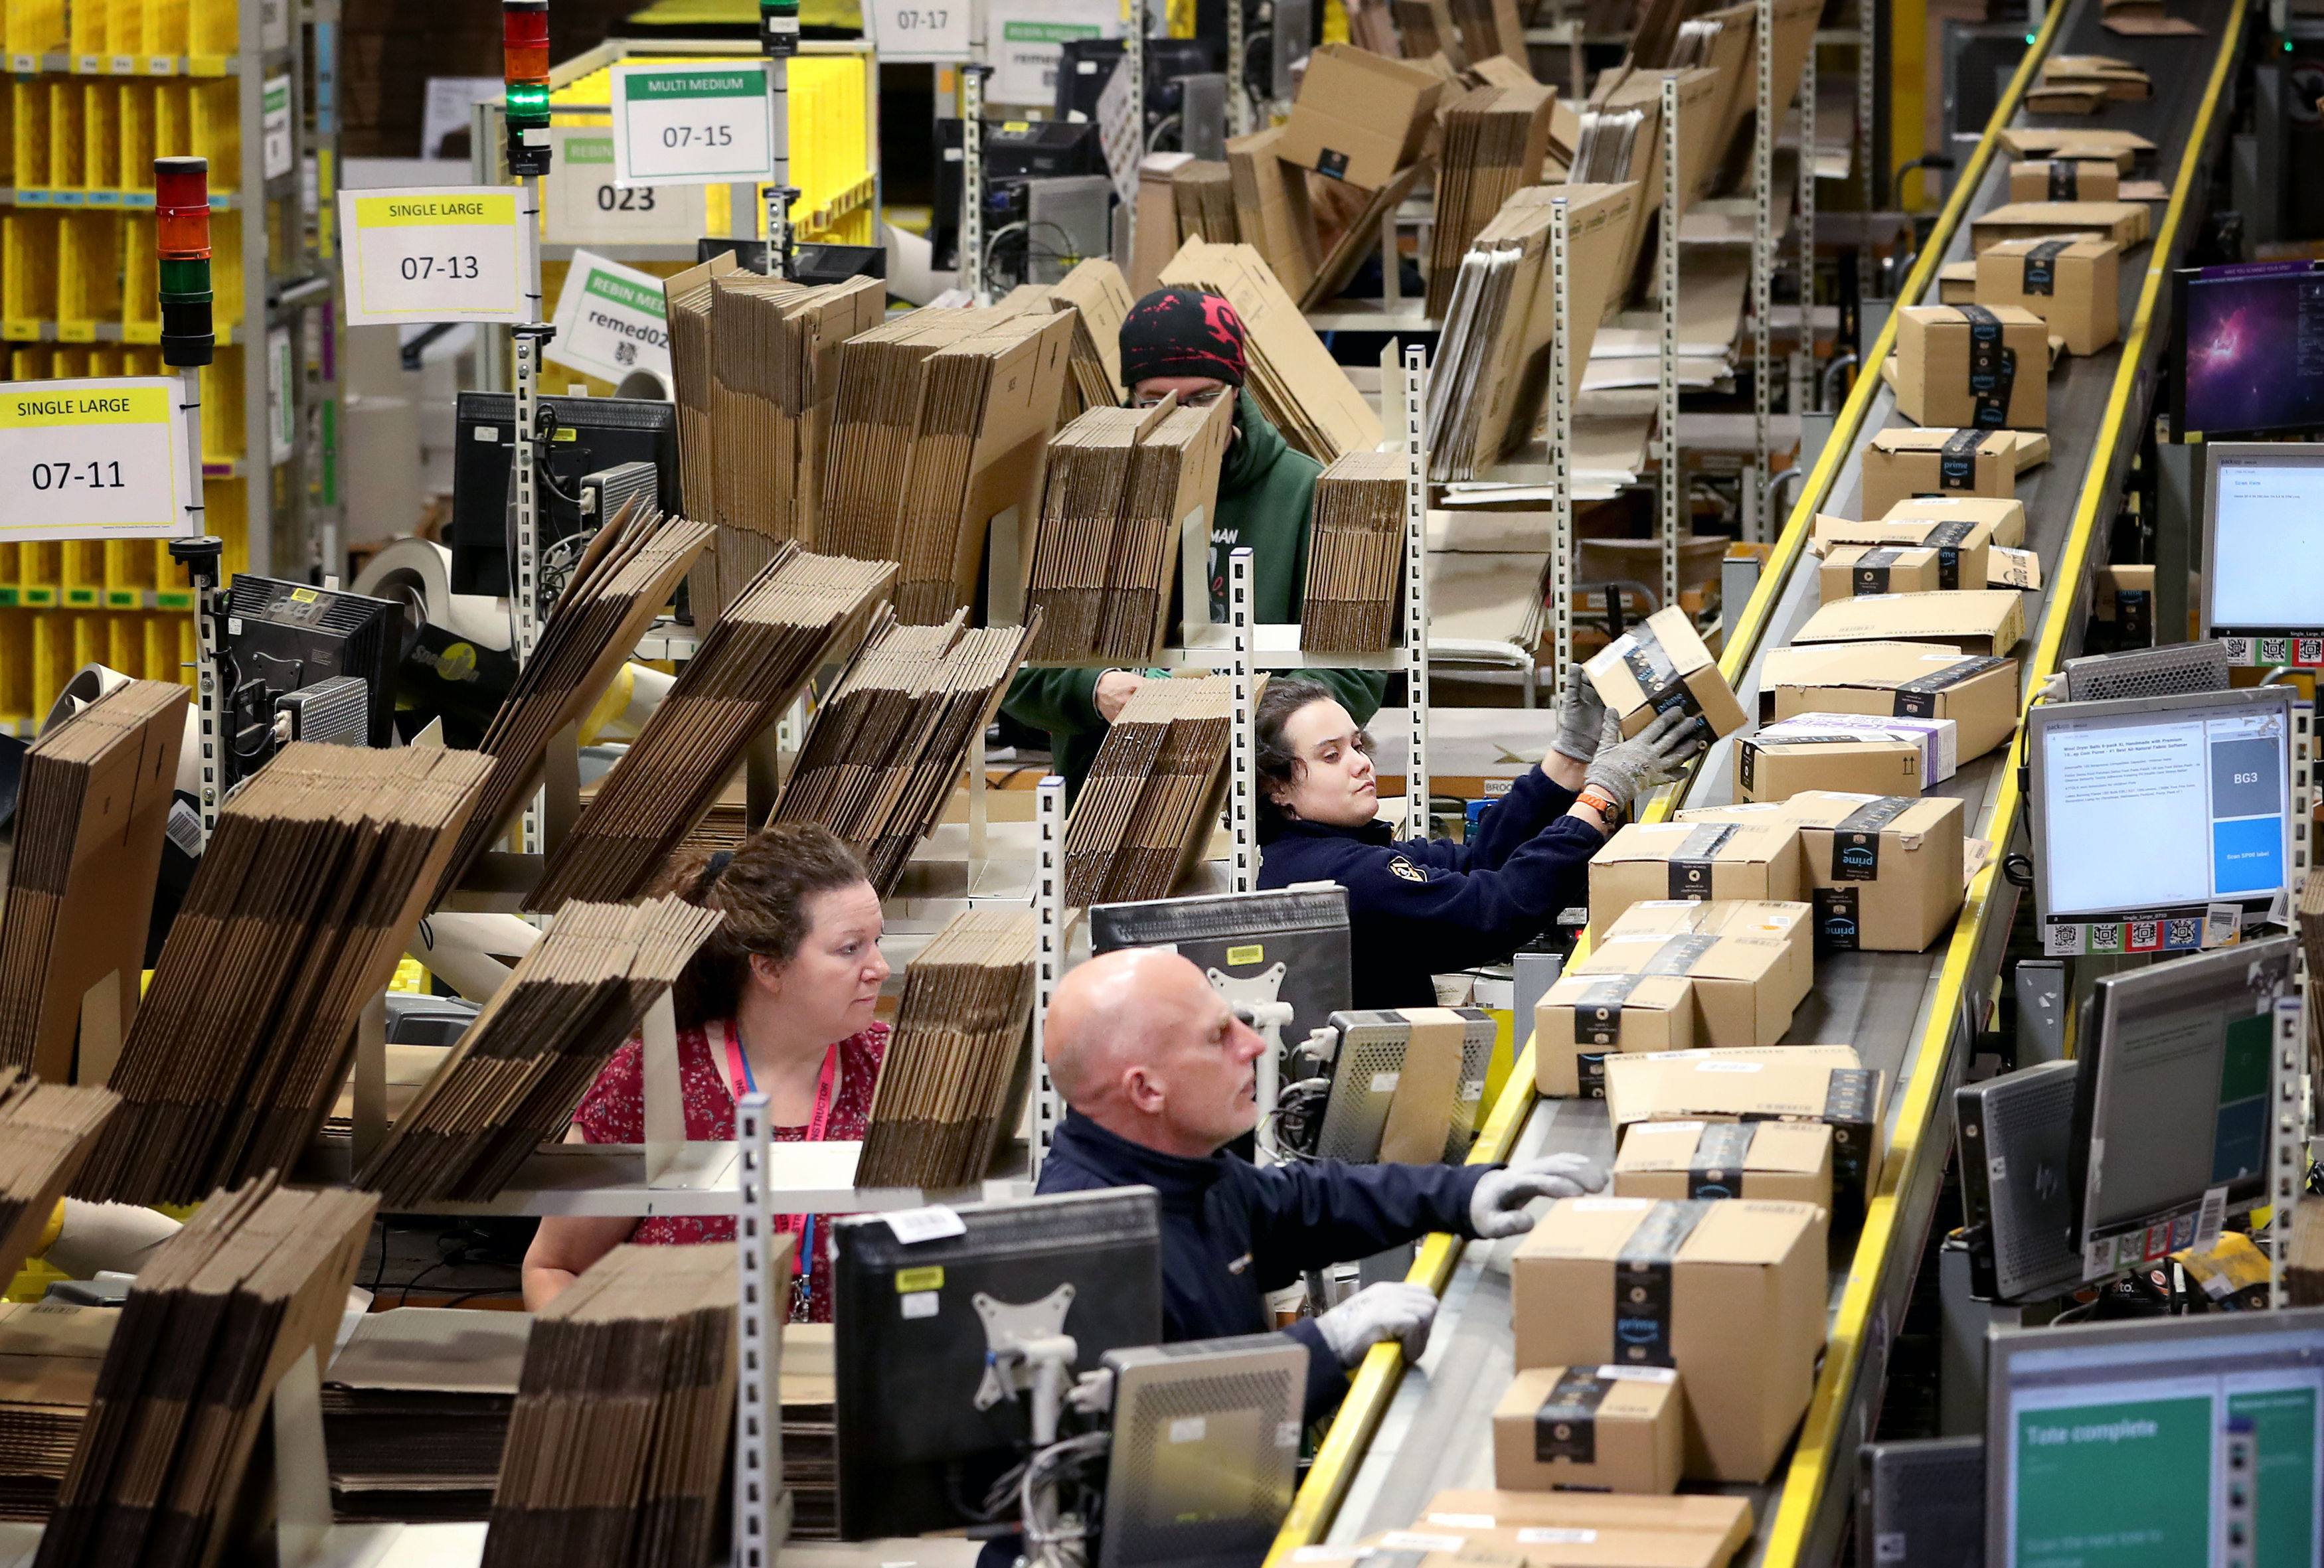 Workers in an Amazon fulfillment center loading cardboard boxes onto a conveyor belt.